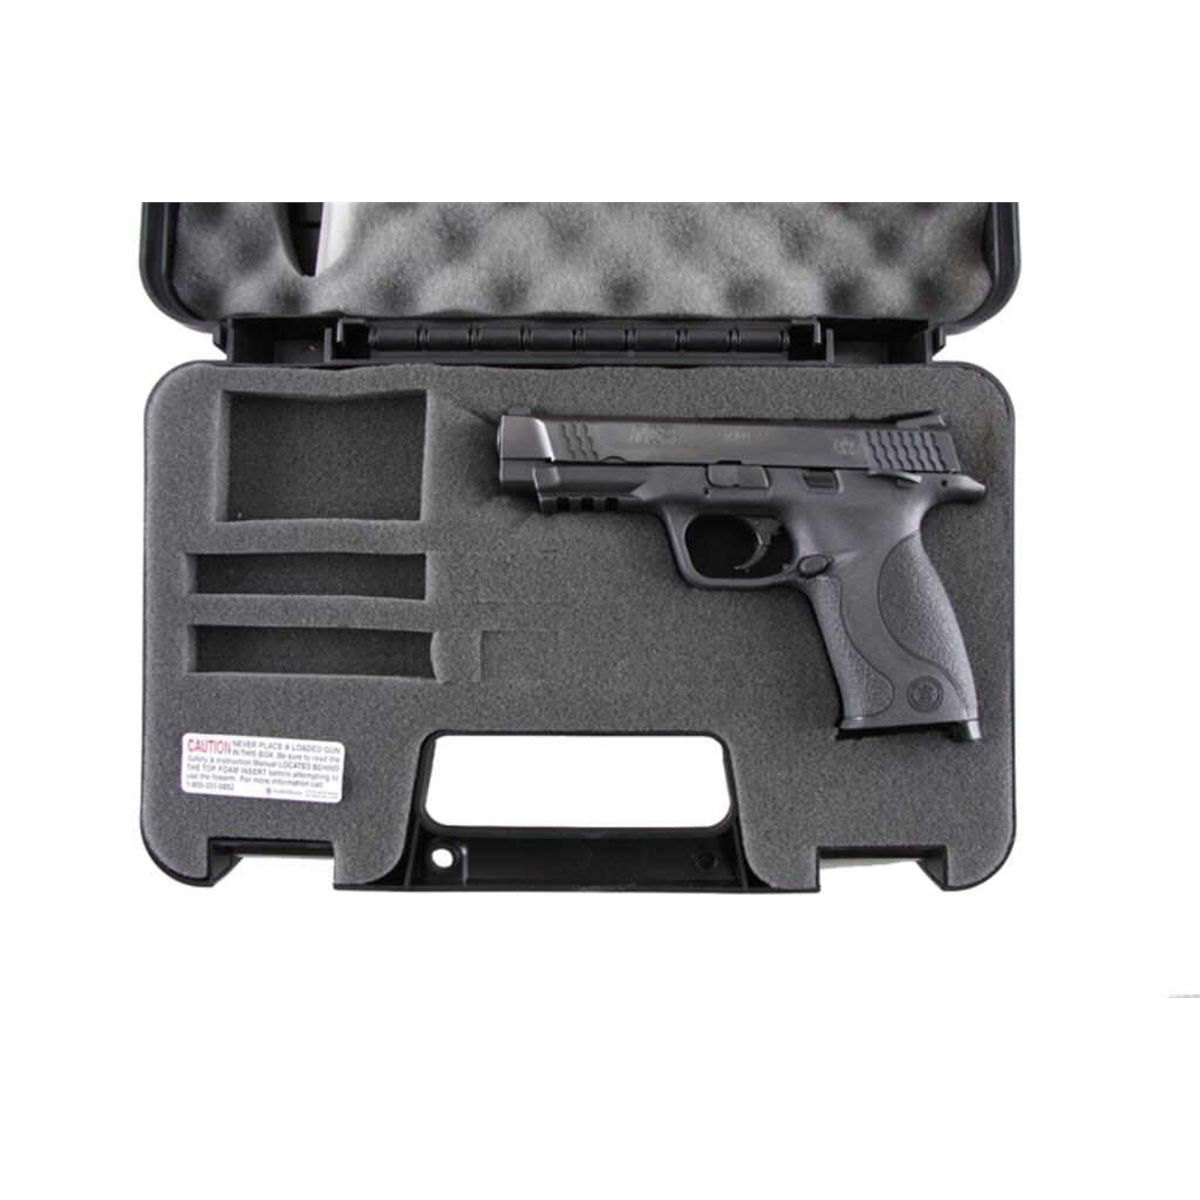 Smith & Wesson Mdl M&P 45 Cal  45acp SN:MPR5907, Double action semi